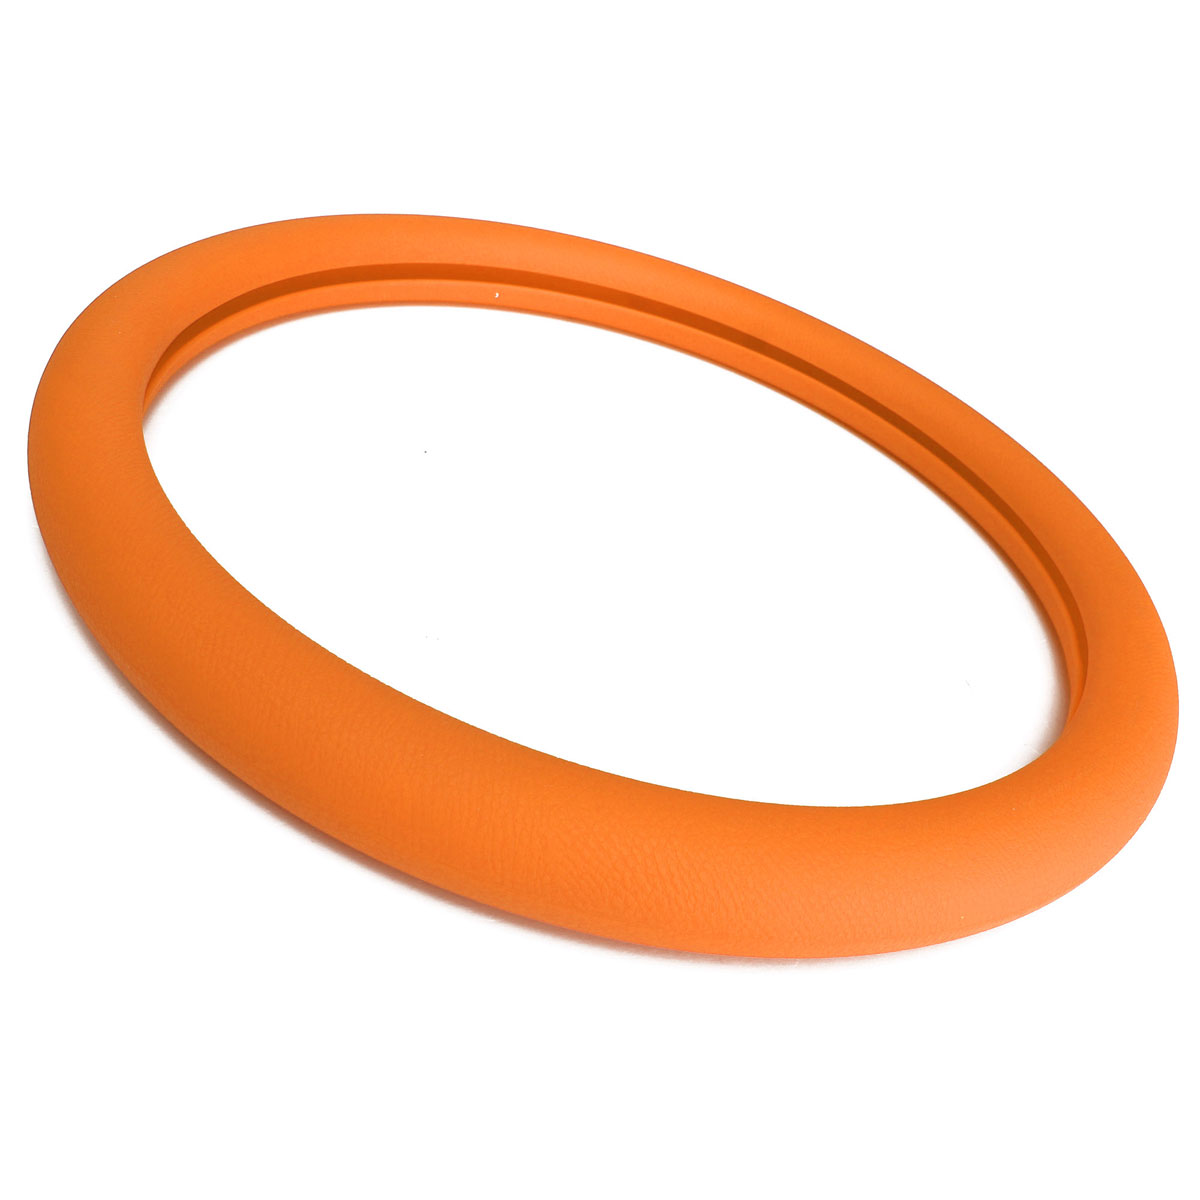 Elastic Silicone Steering Wheel Cover Anti-Slip Fit For 36-40cm Steering Wheel